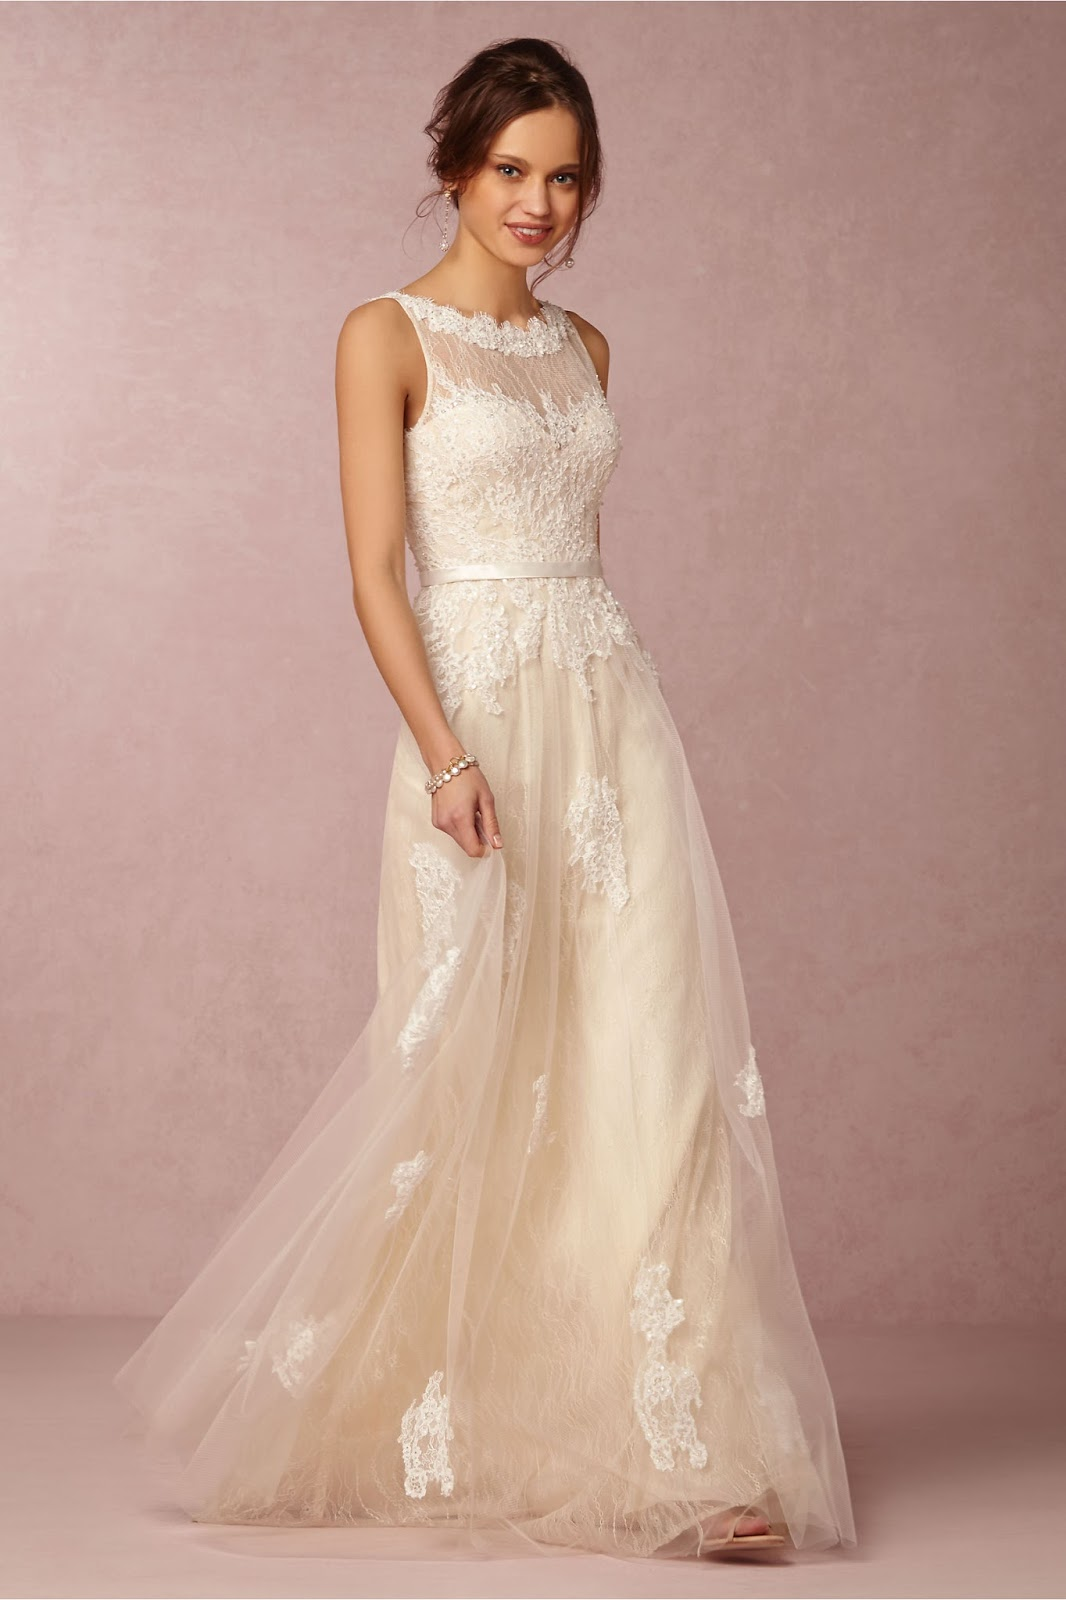 Wedding Dresses For Older Brides Second Weddings 2nd Marriage